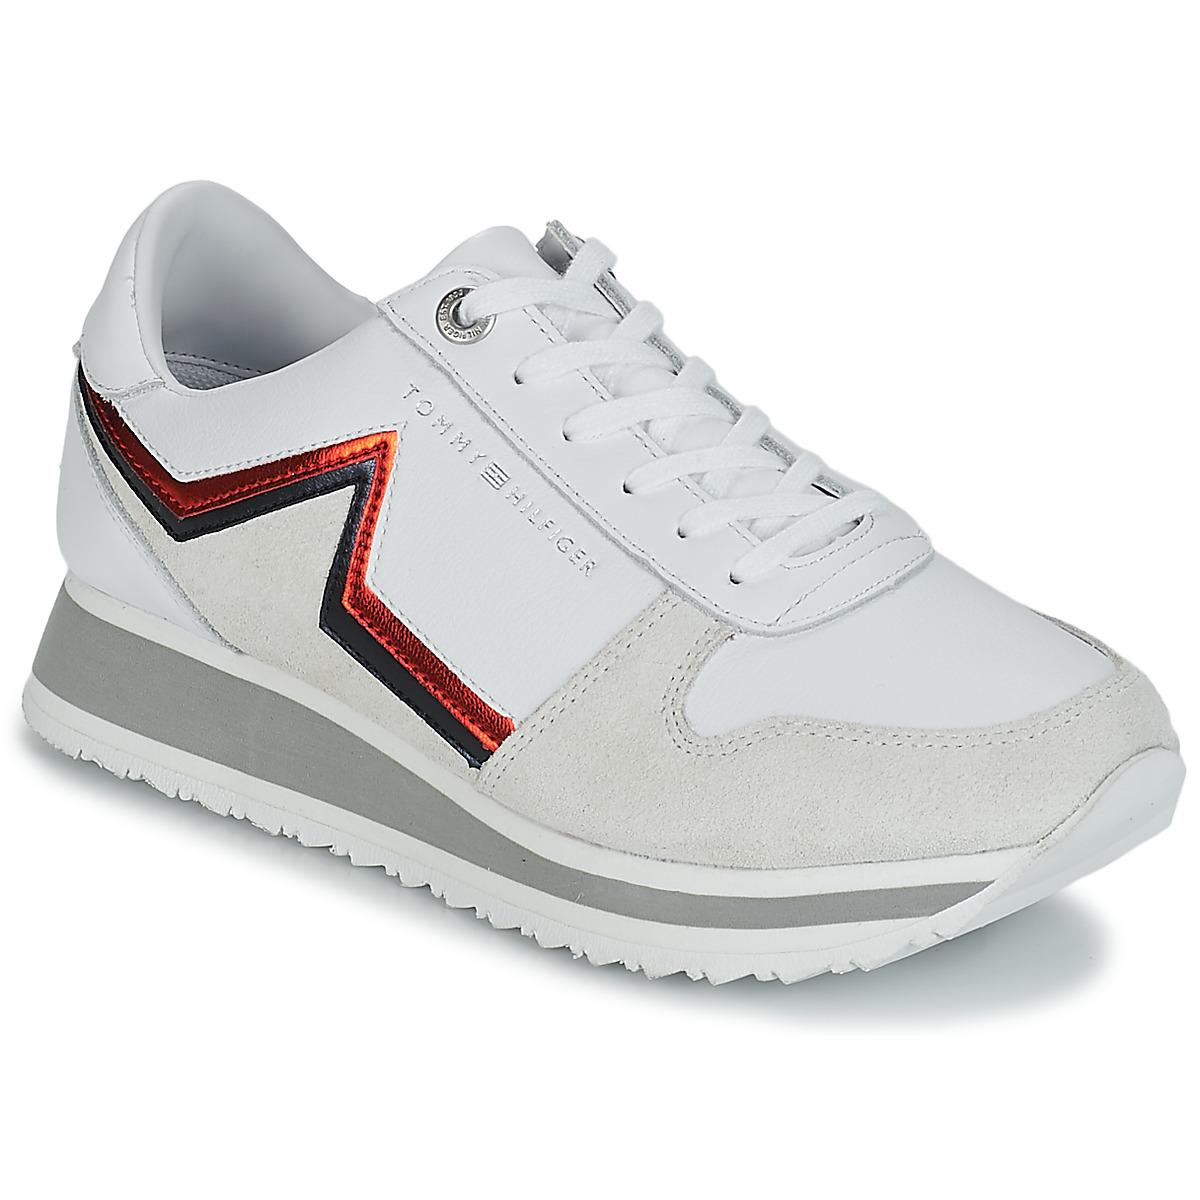 62159e393 Tommy Hilfiger Tommy Star Retro Runner Shoes (trainers) in White - Lyst